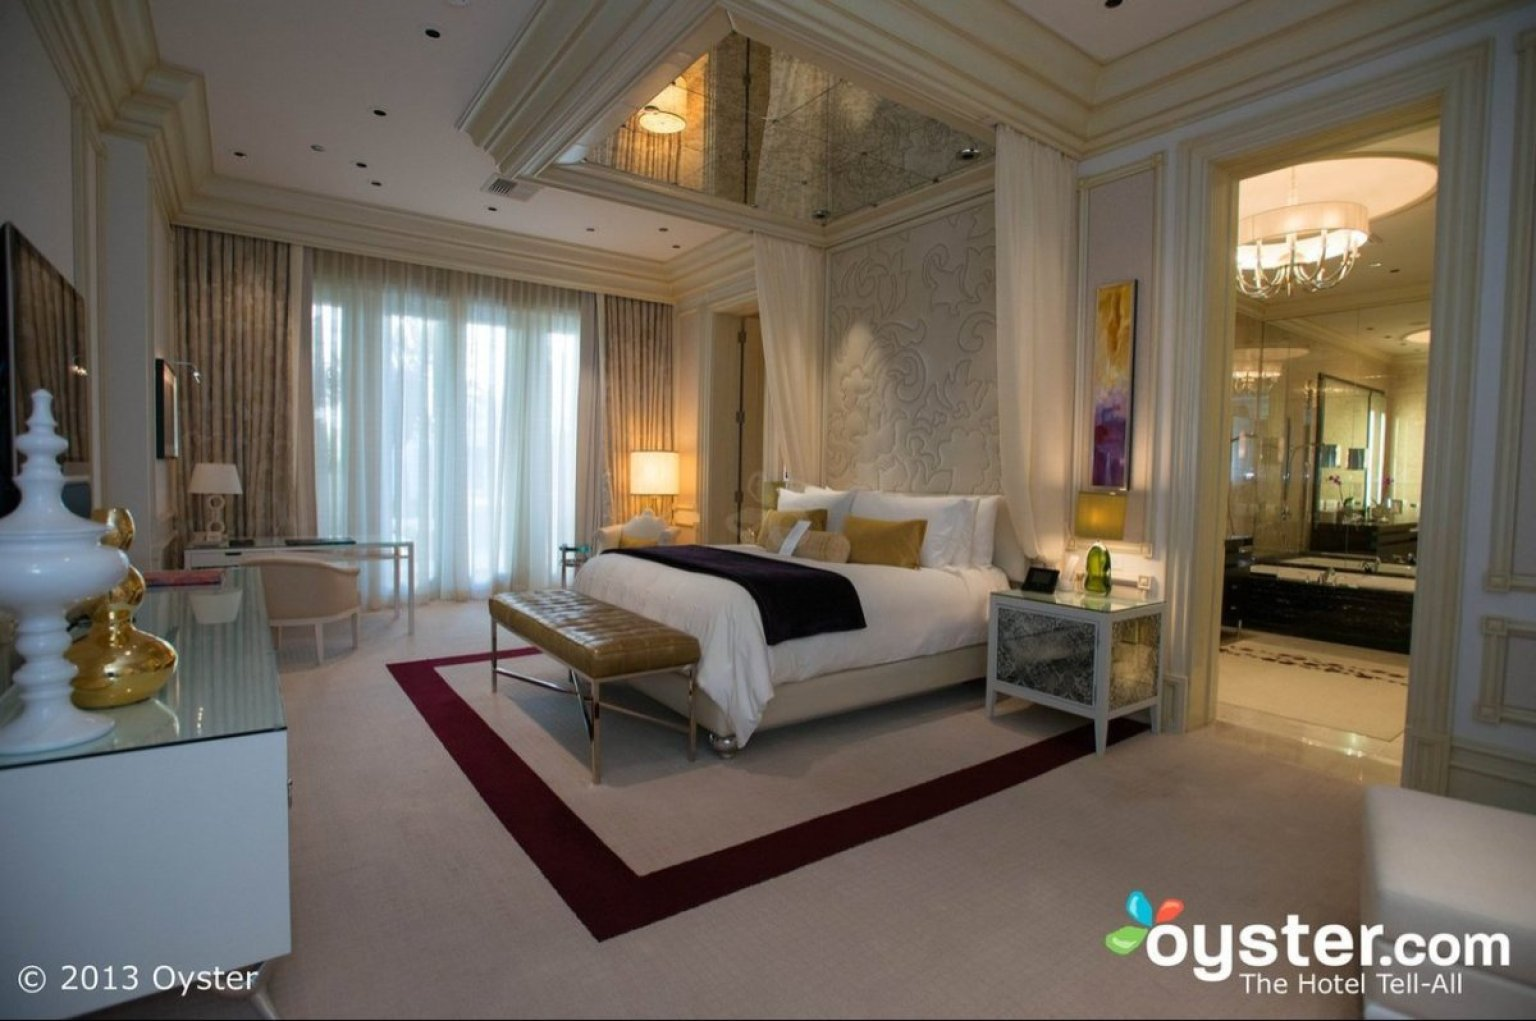 5 Of The Most Uber Luxurious Suites In Las Vegas Oyster